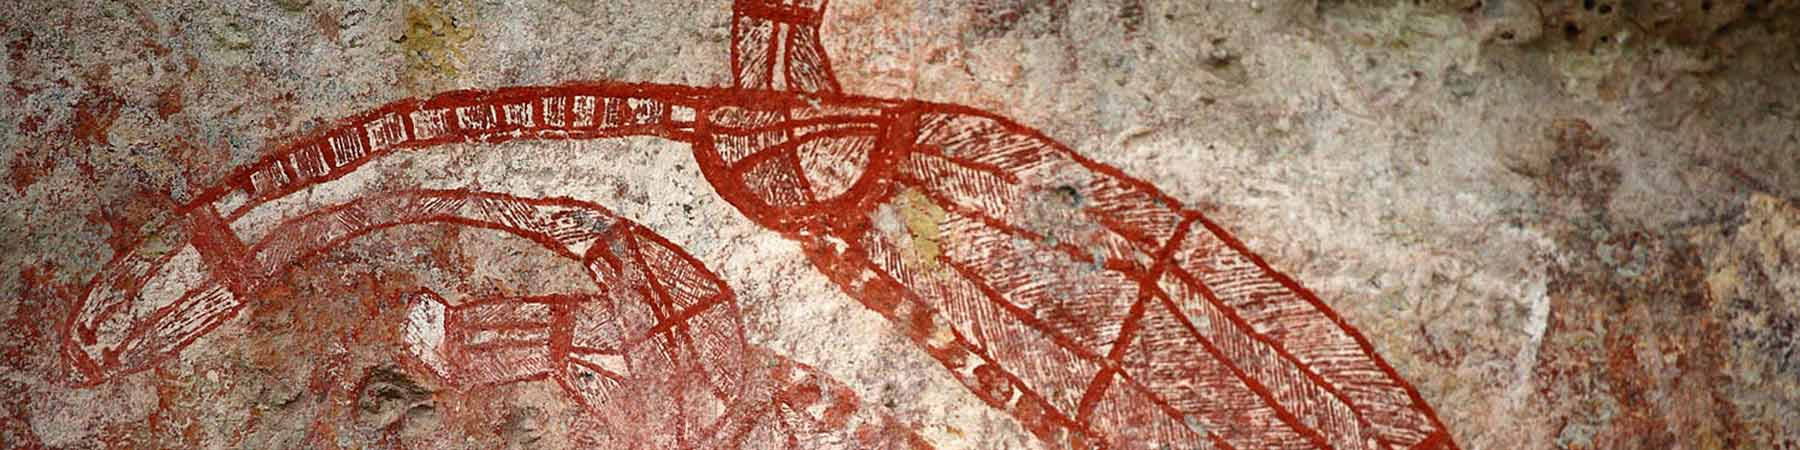 Rock art turtle painting, Kakadu National park